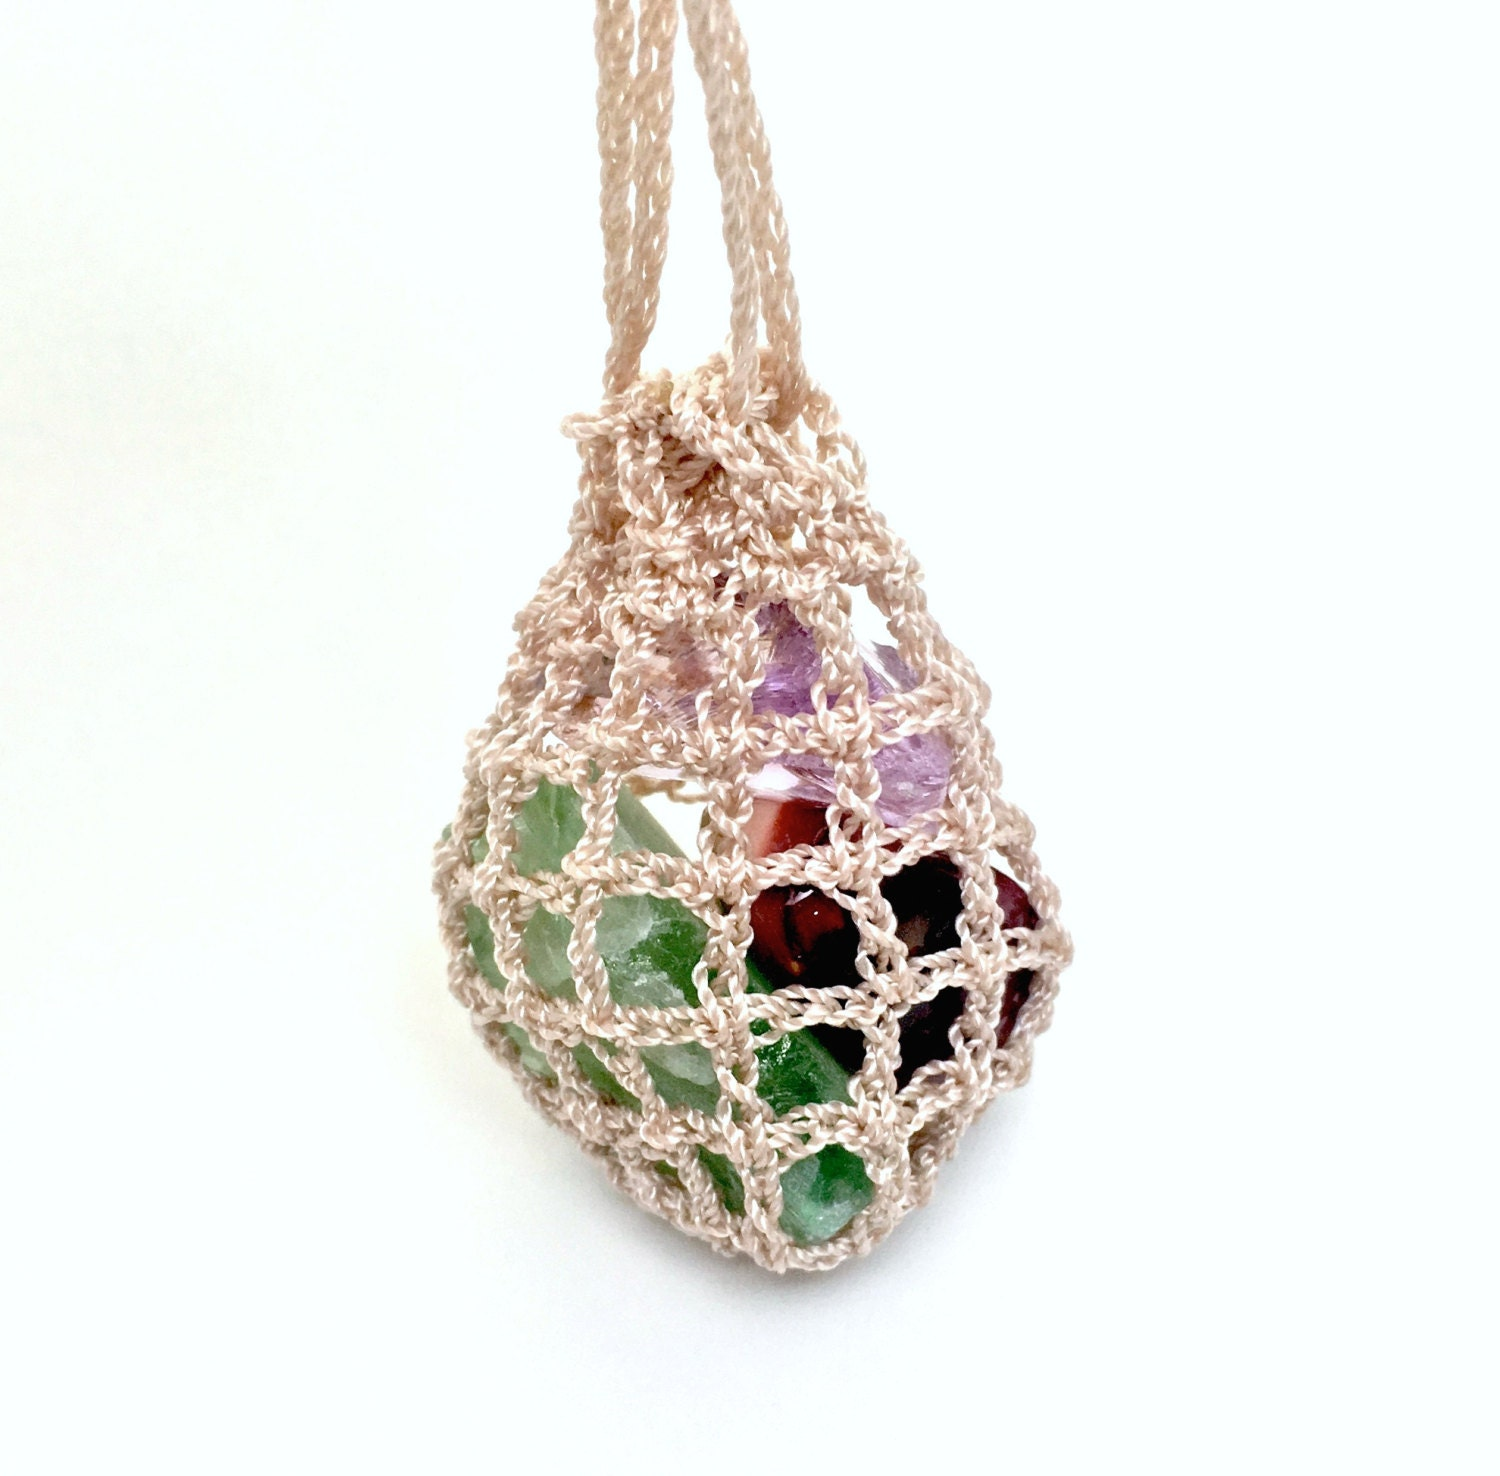 Crochet pouch necklace crystals pouch necklace adjustable zoom aloadofball Images